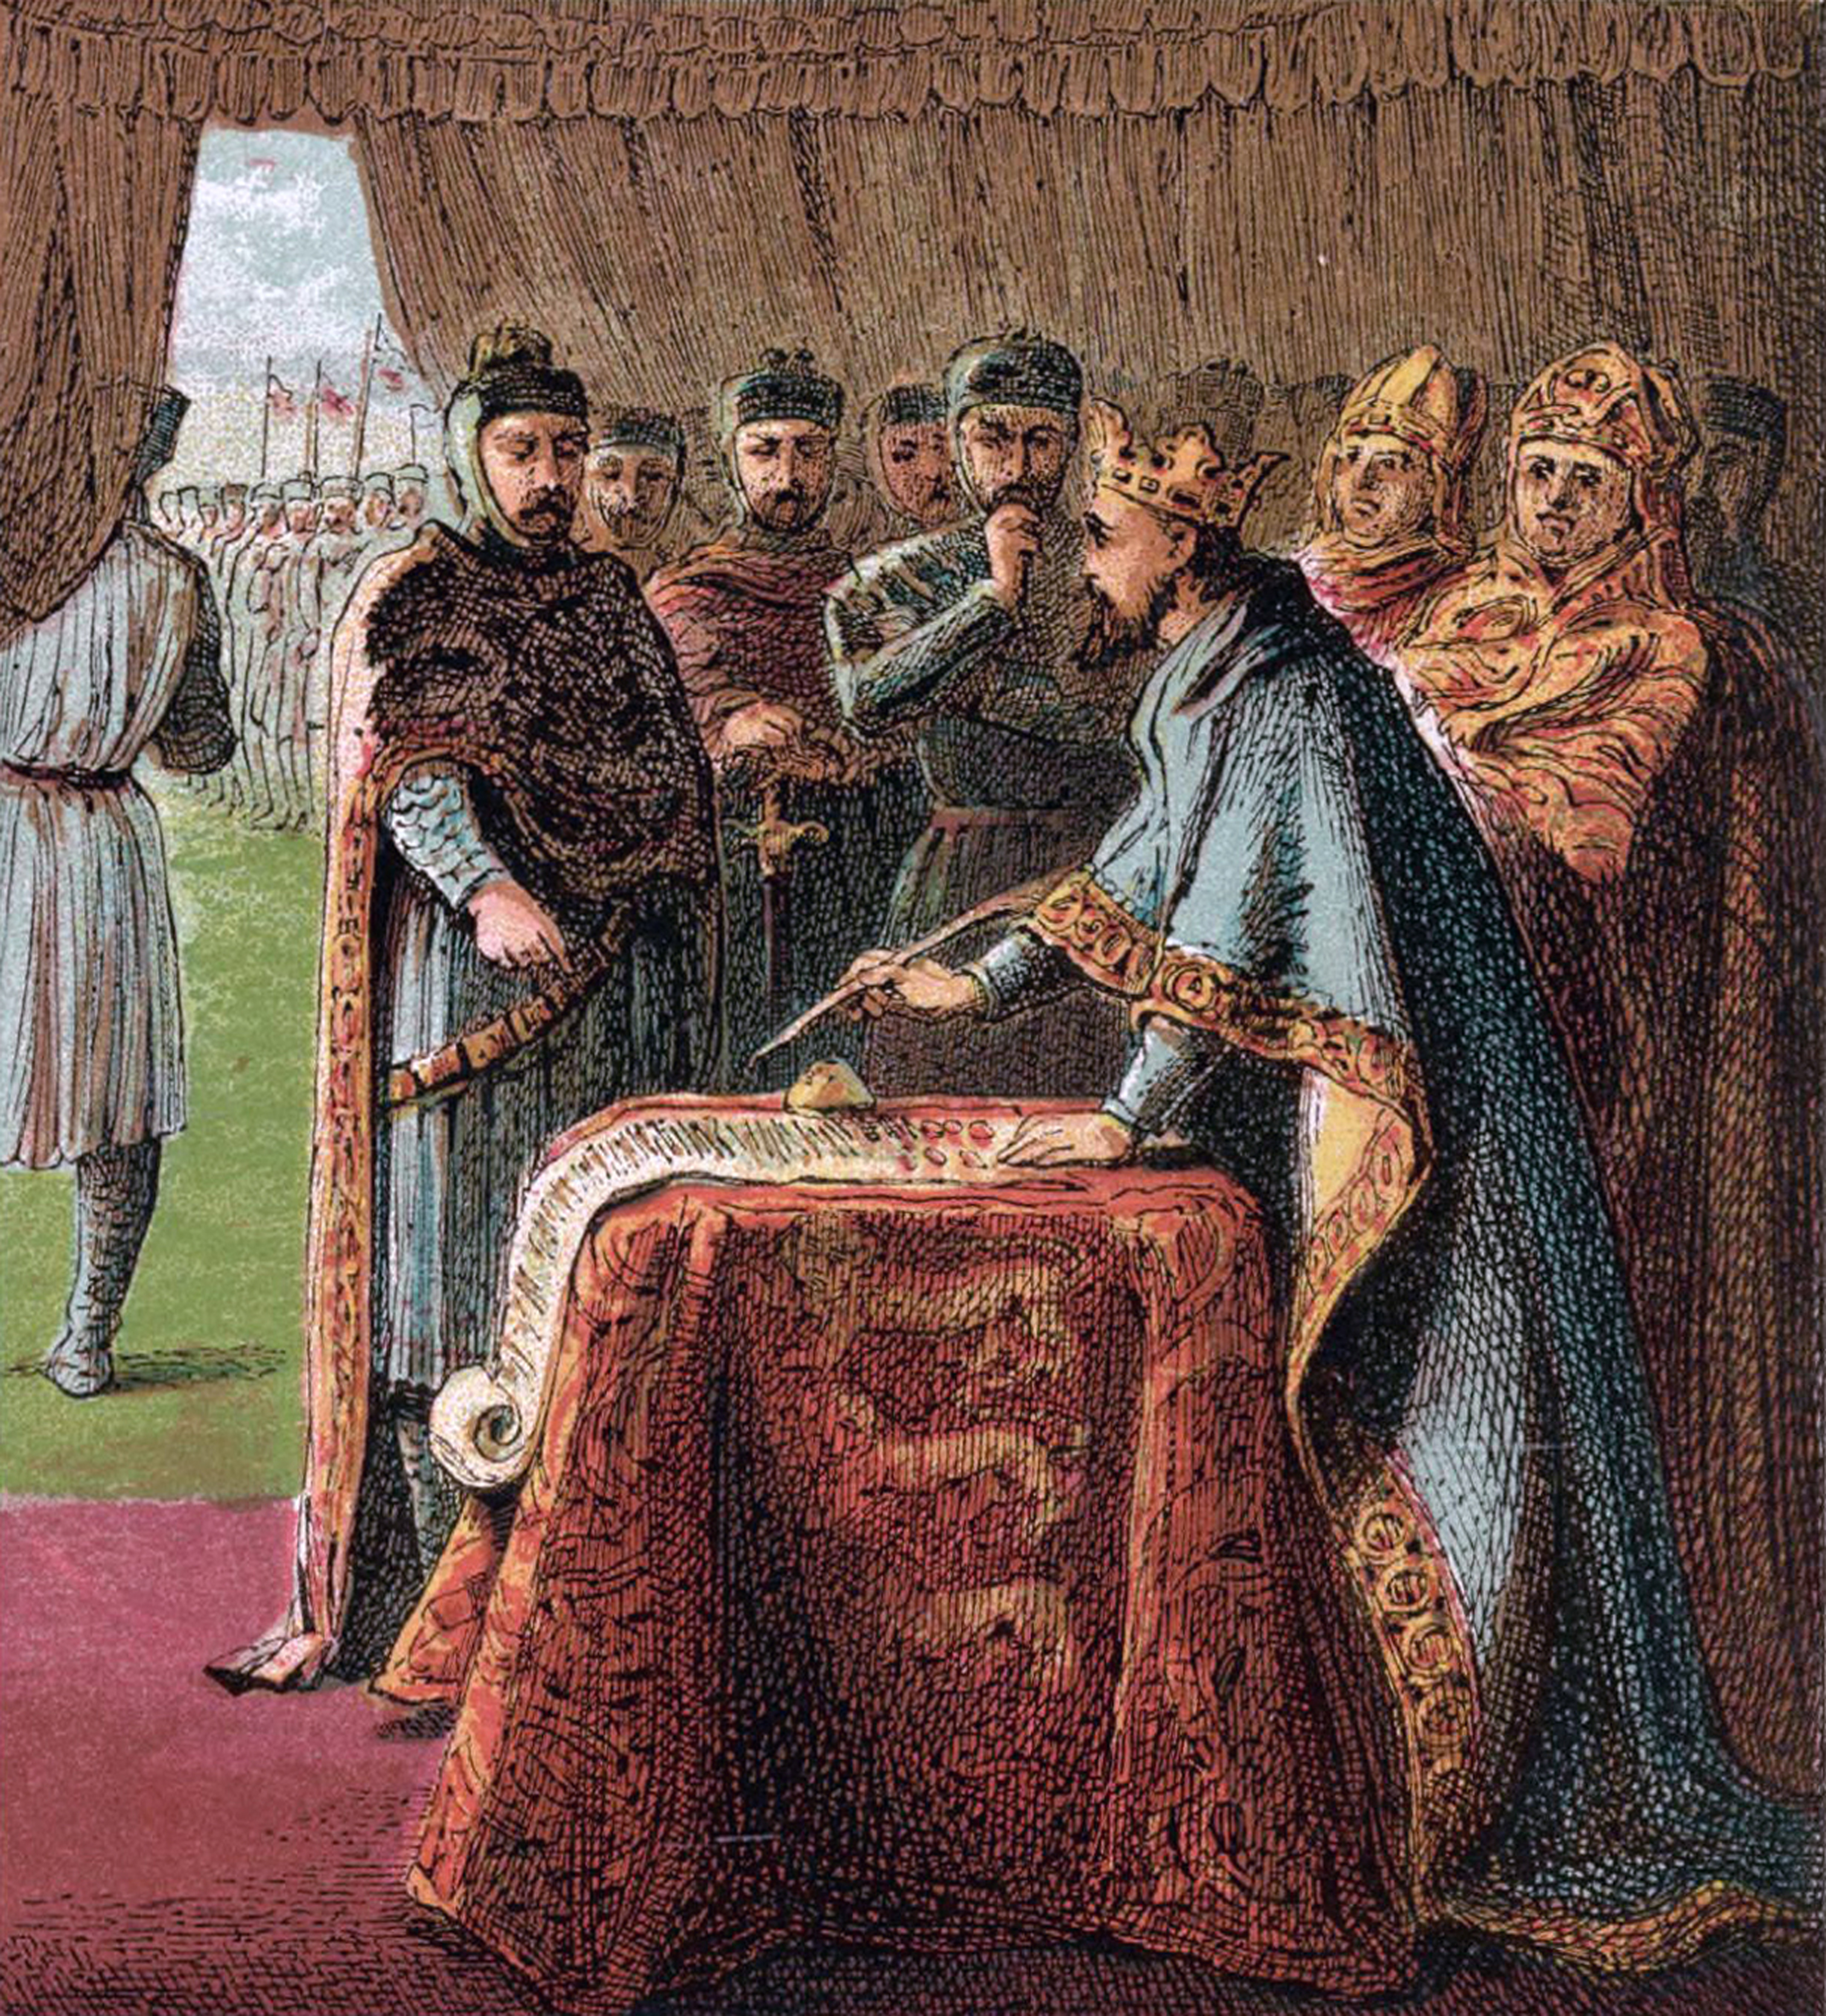 The 1300 Magna Carta, recently discovered in Kent (Credit: Magna Carta Research Project)